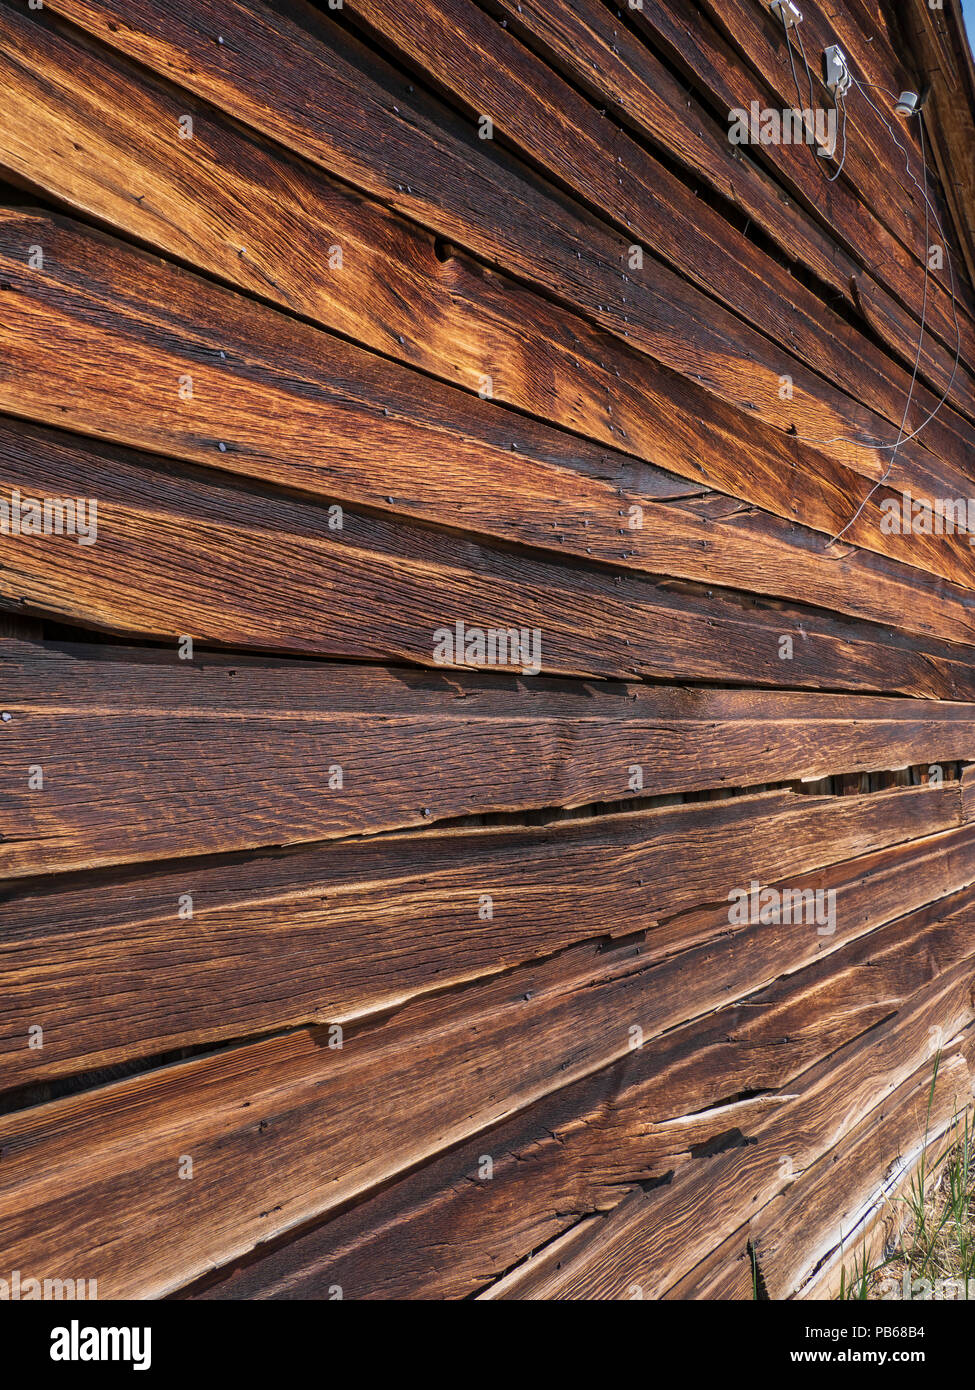 Wooden siding, Bodie ghost town, Bodie State Historic Park, California. Stock Photo